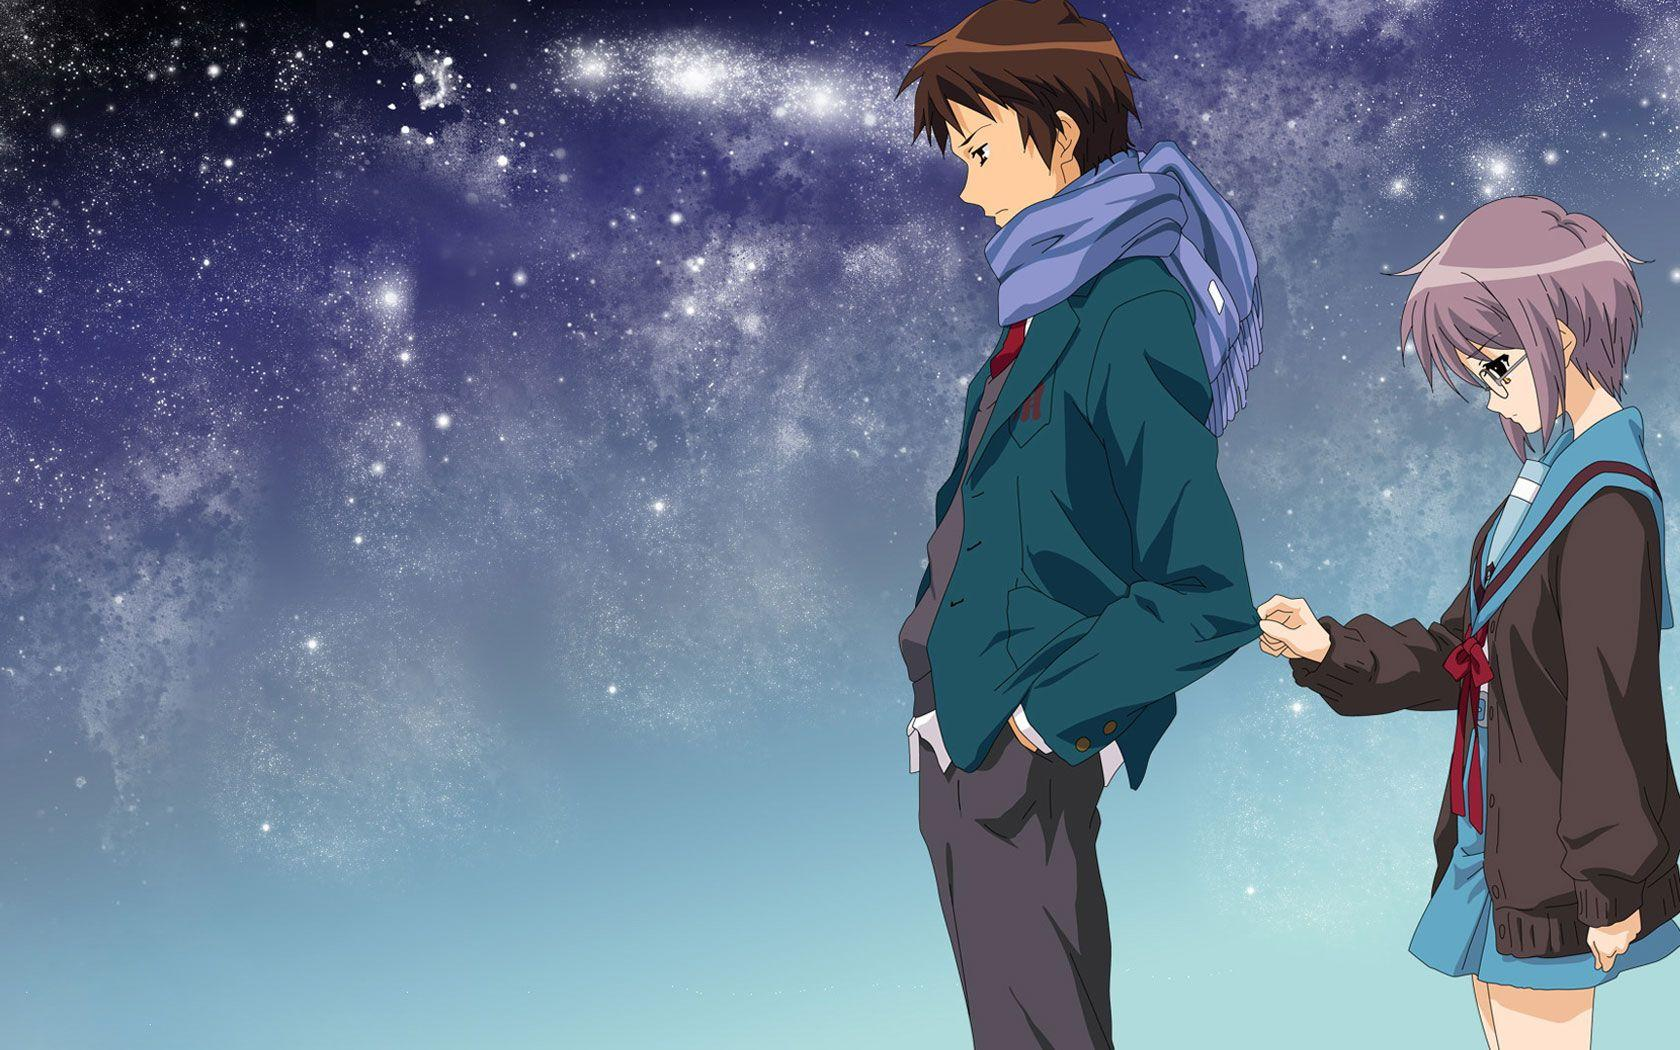 Anime Couple Wallpapers HD - Wallpaper Cave